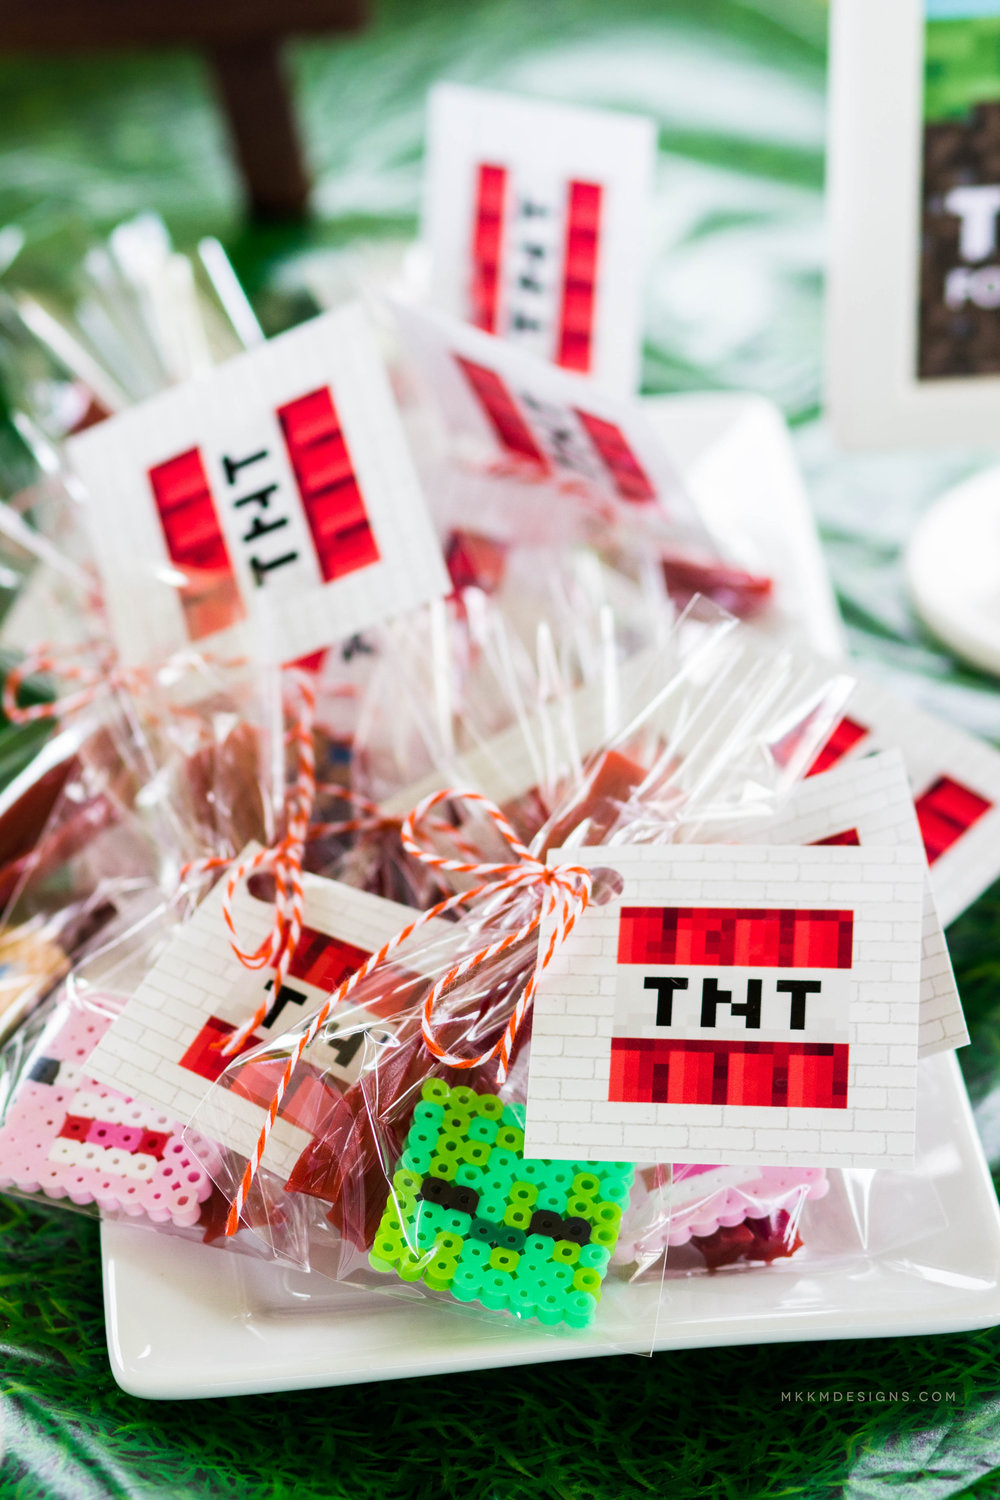 Free Minecraft TNT tags by MKKM Designs